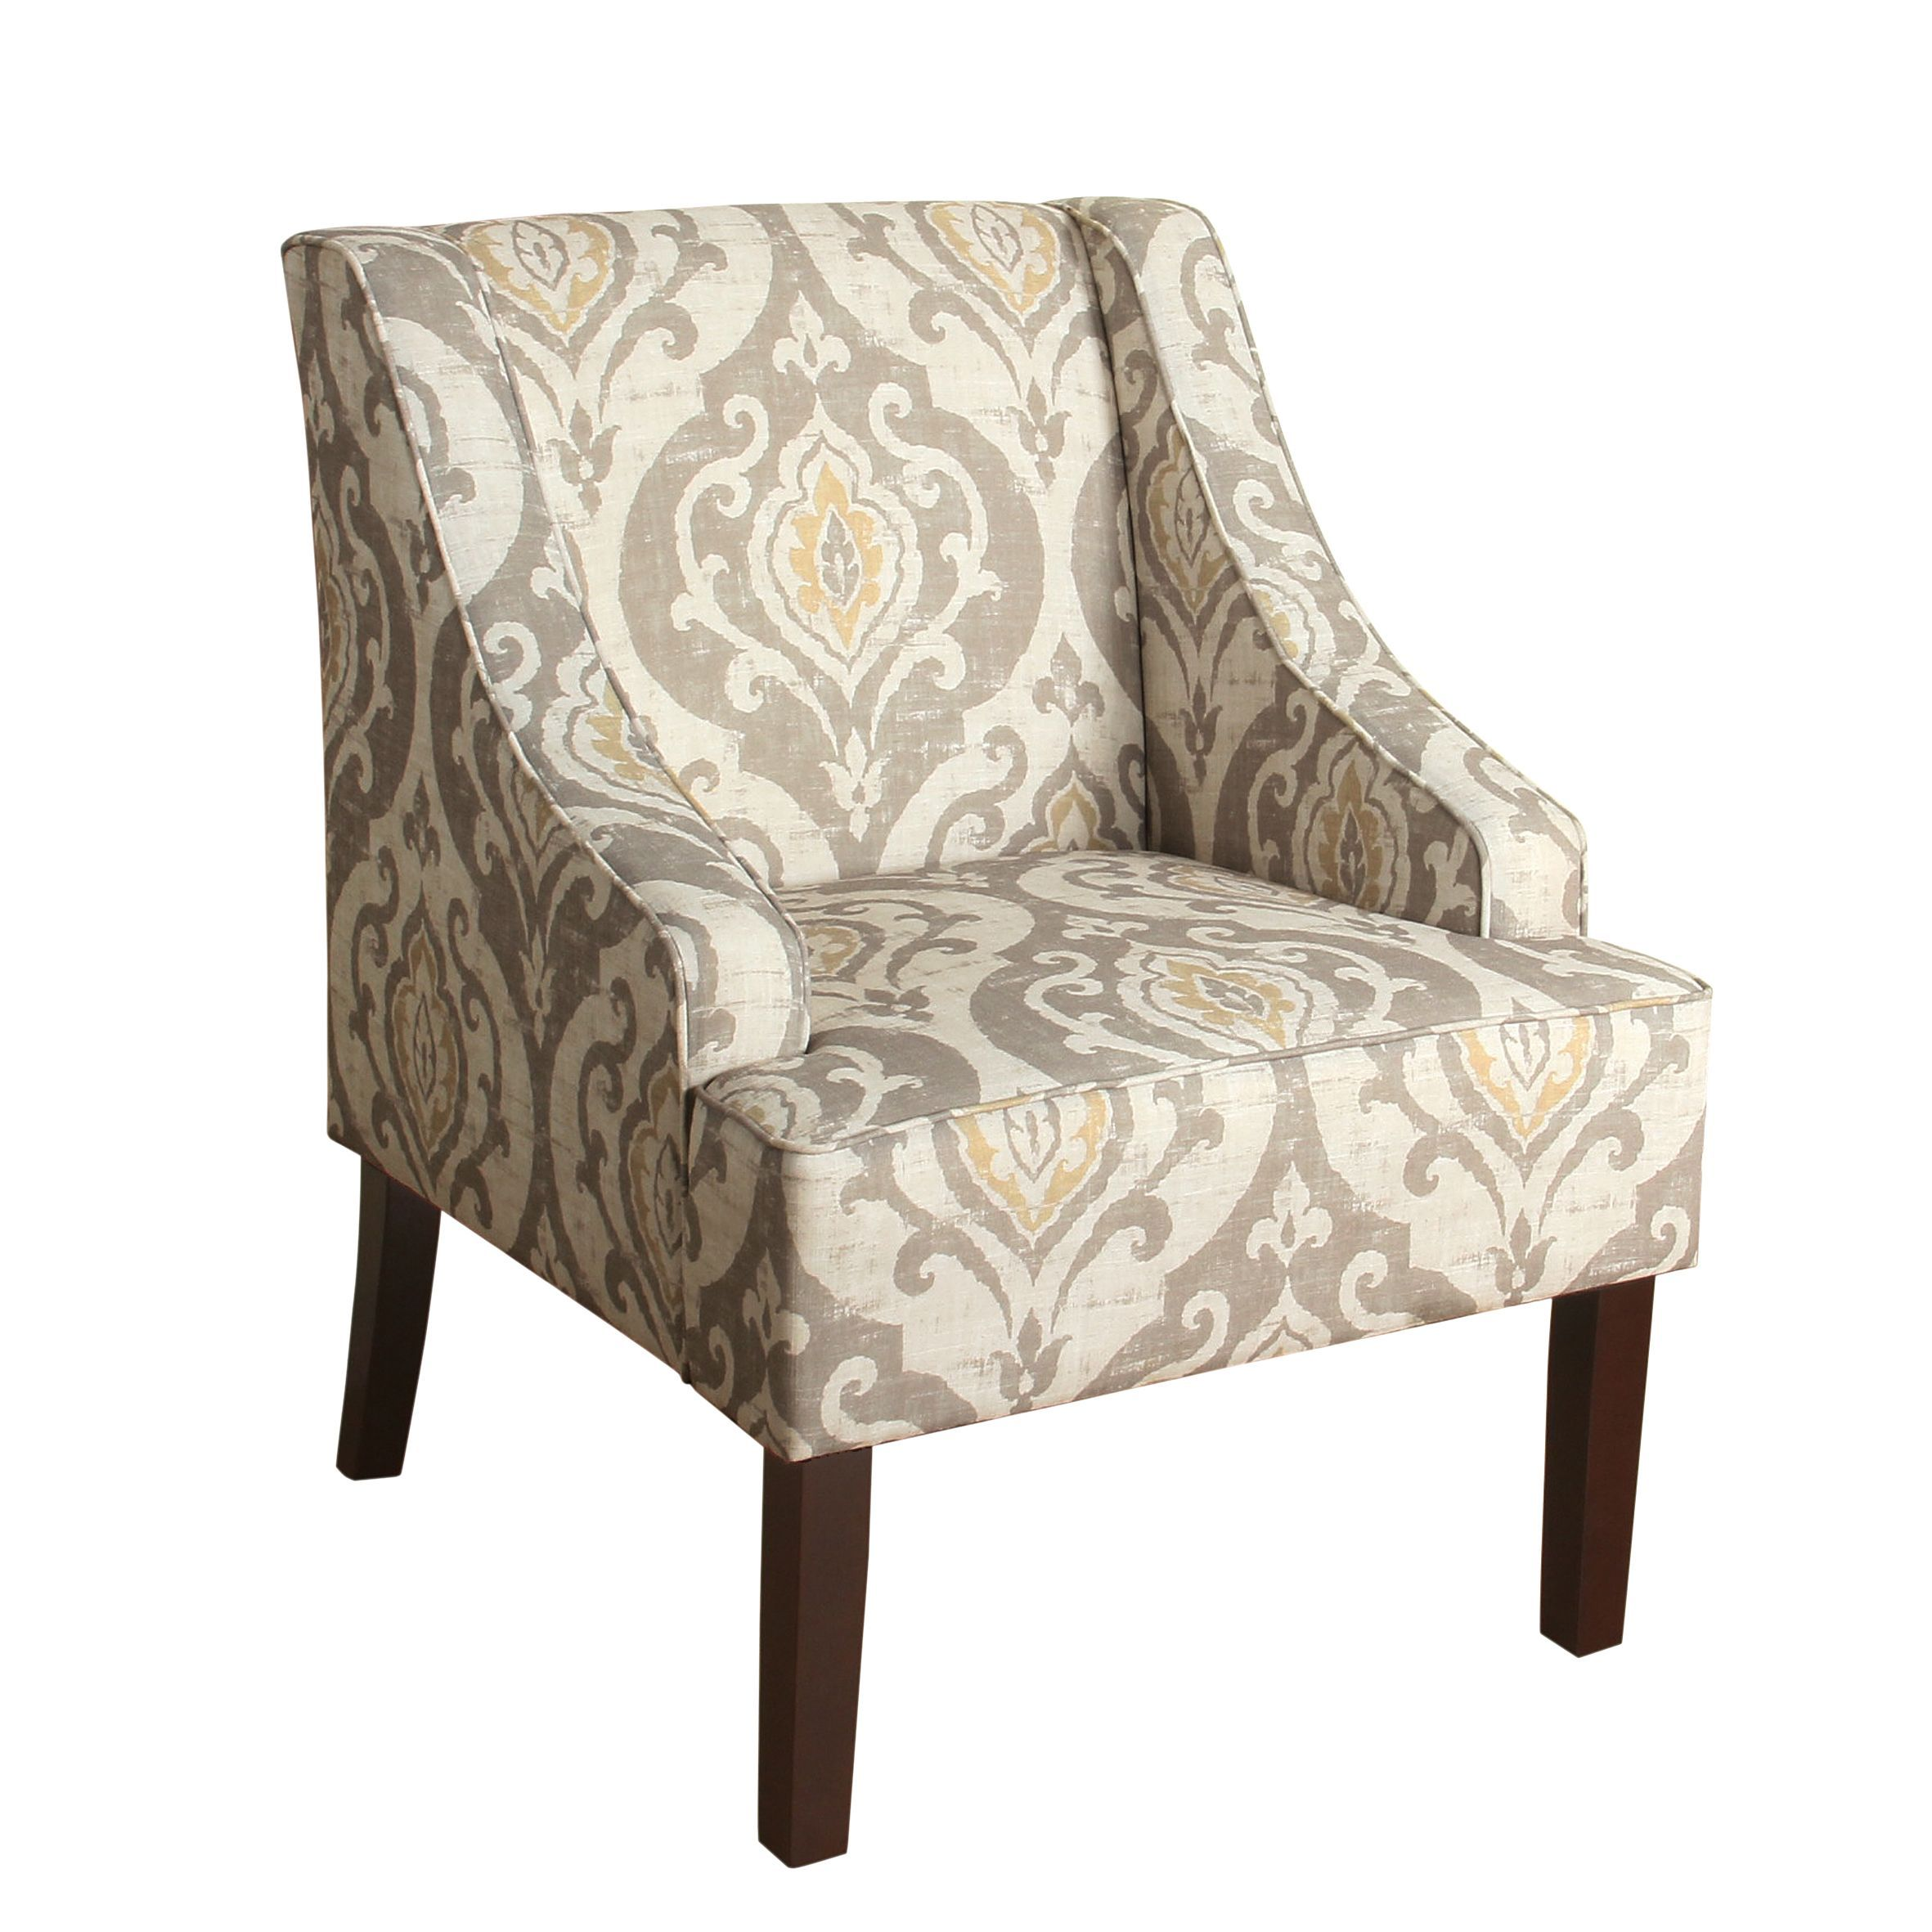 HomePop Suri Swoop Arm Accent Chair (Natural Raffia), Multi (Fabric ...